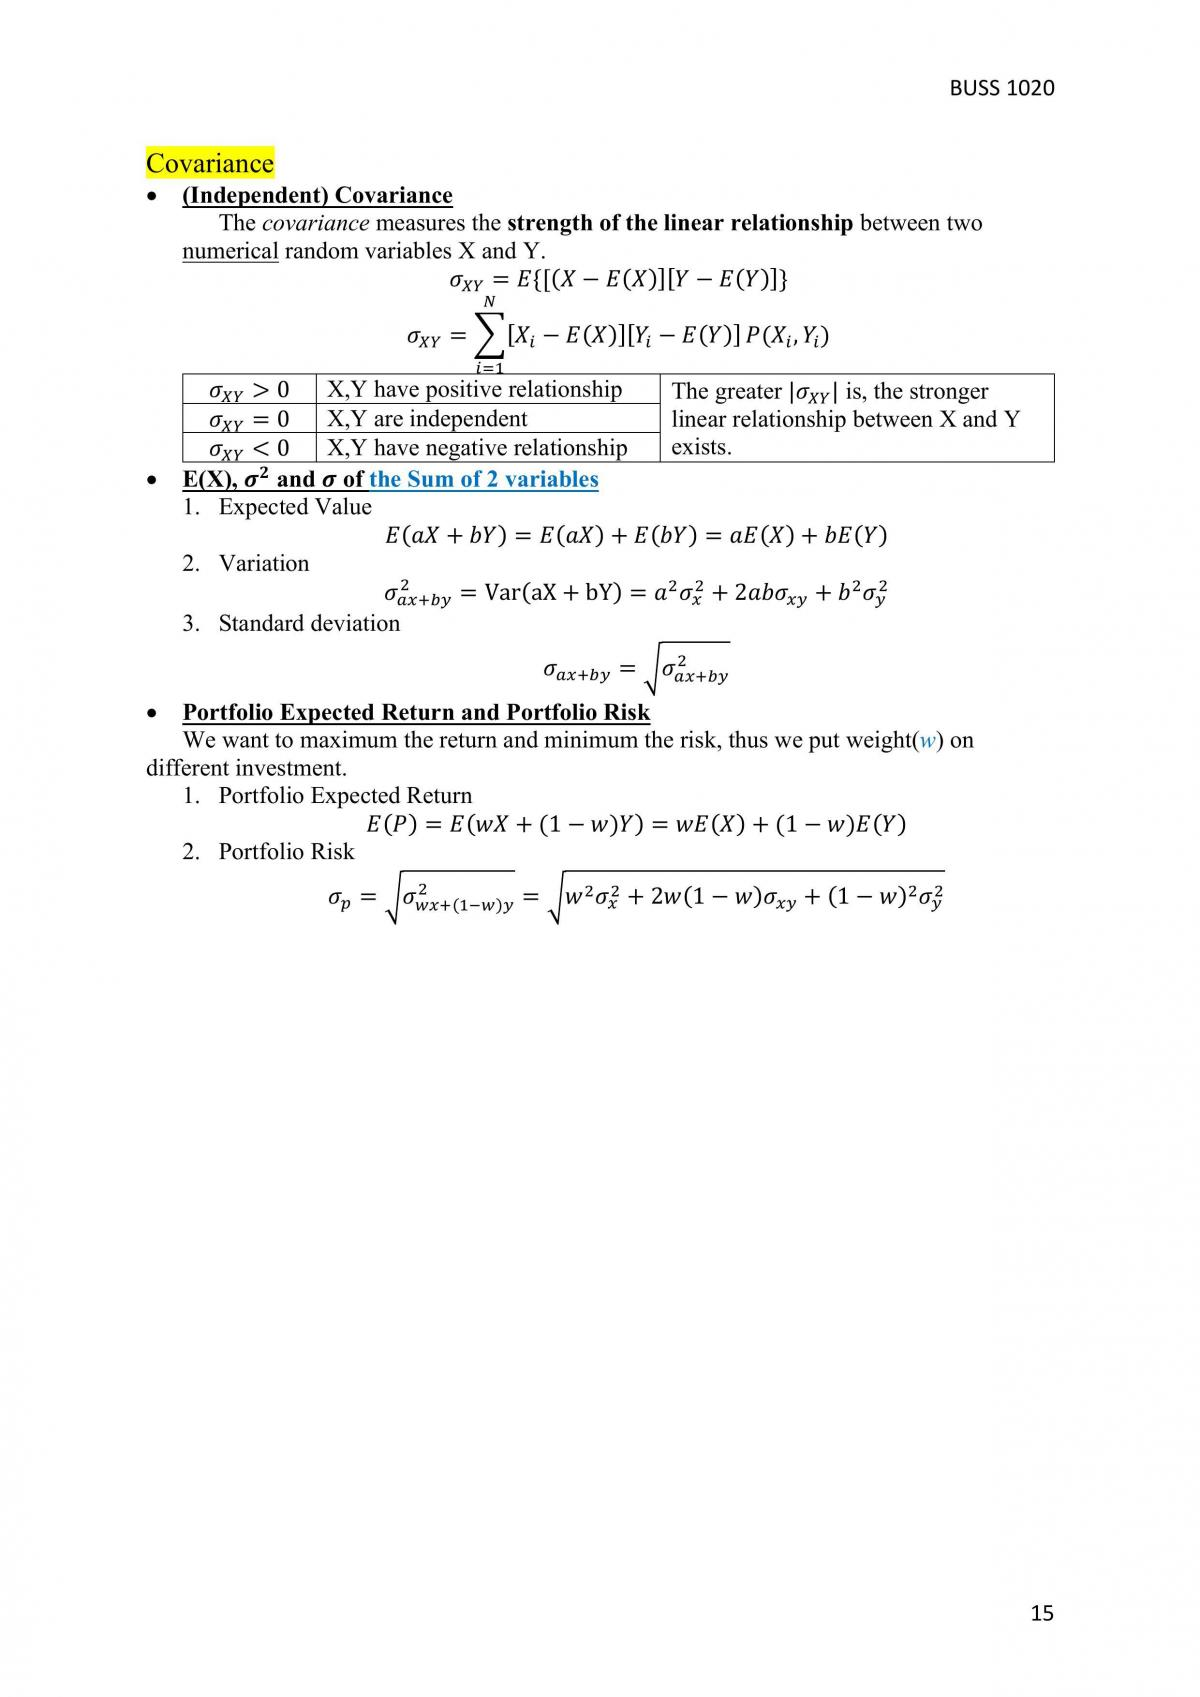 Complete Revision Notes - BUSS1020 - Page 15